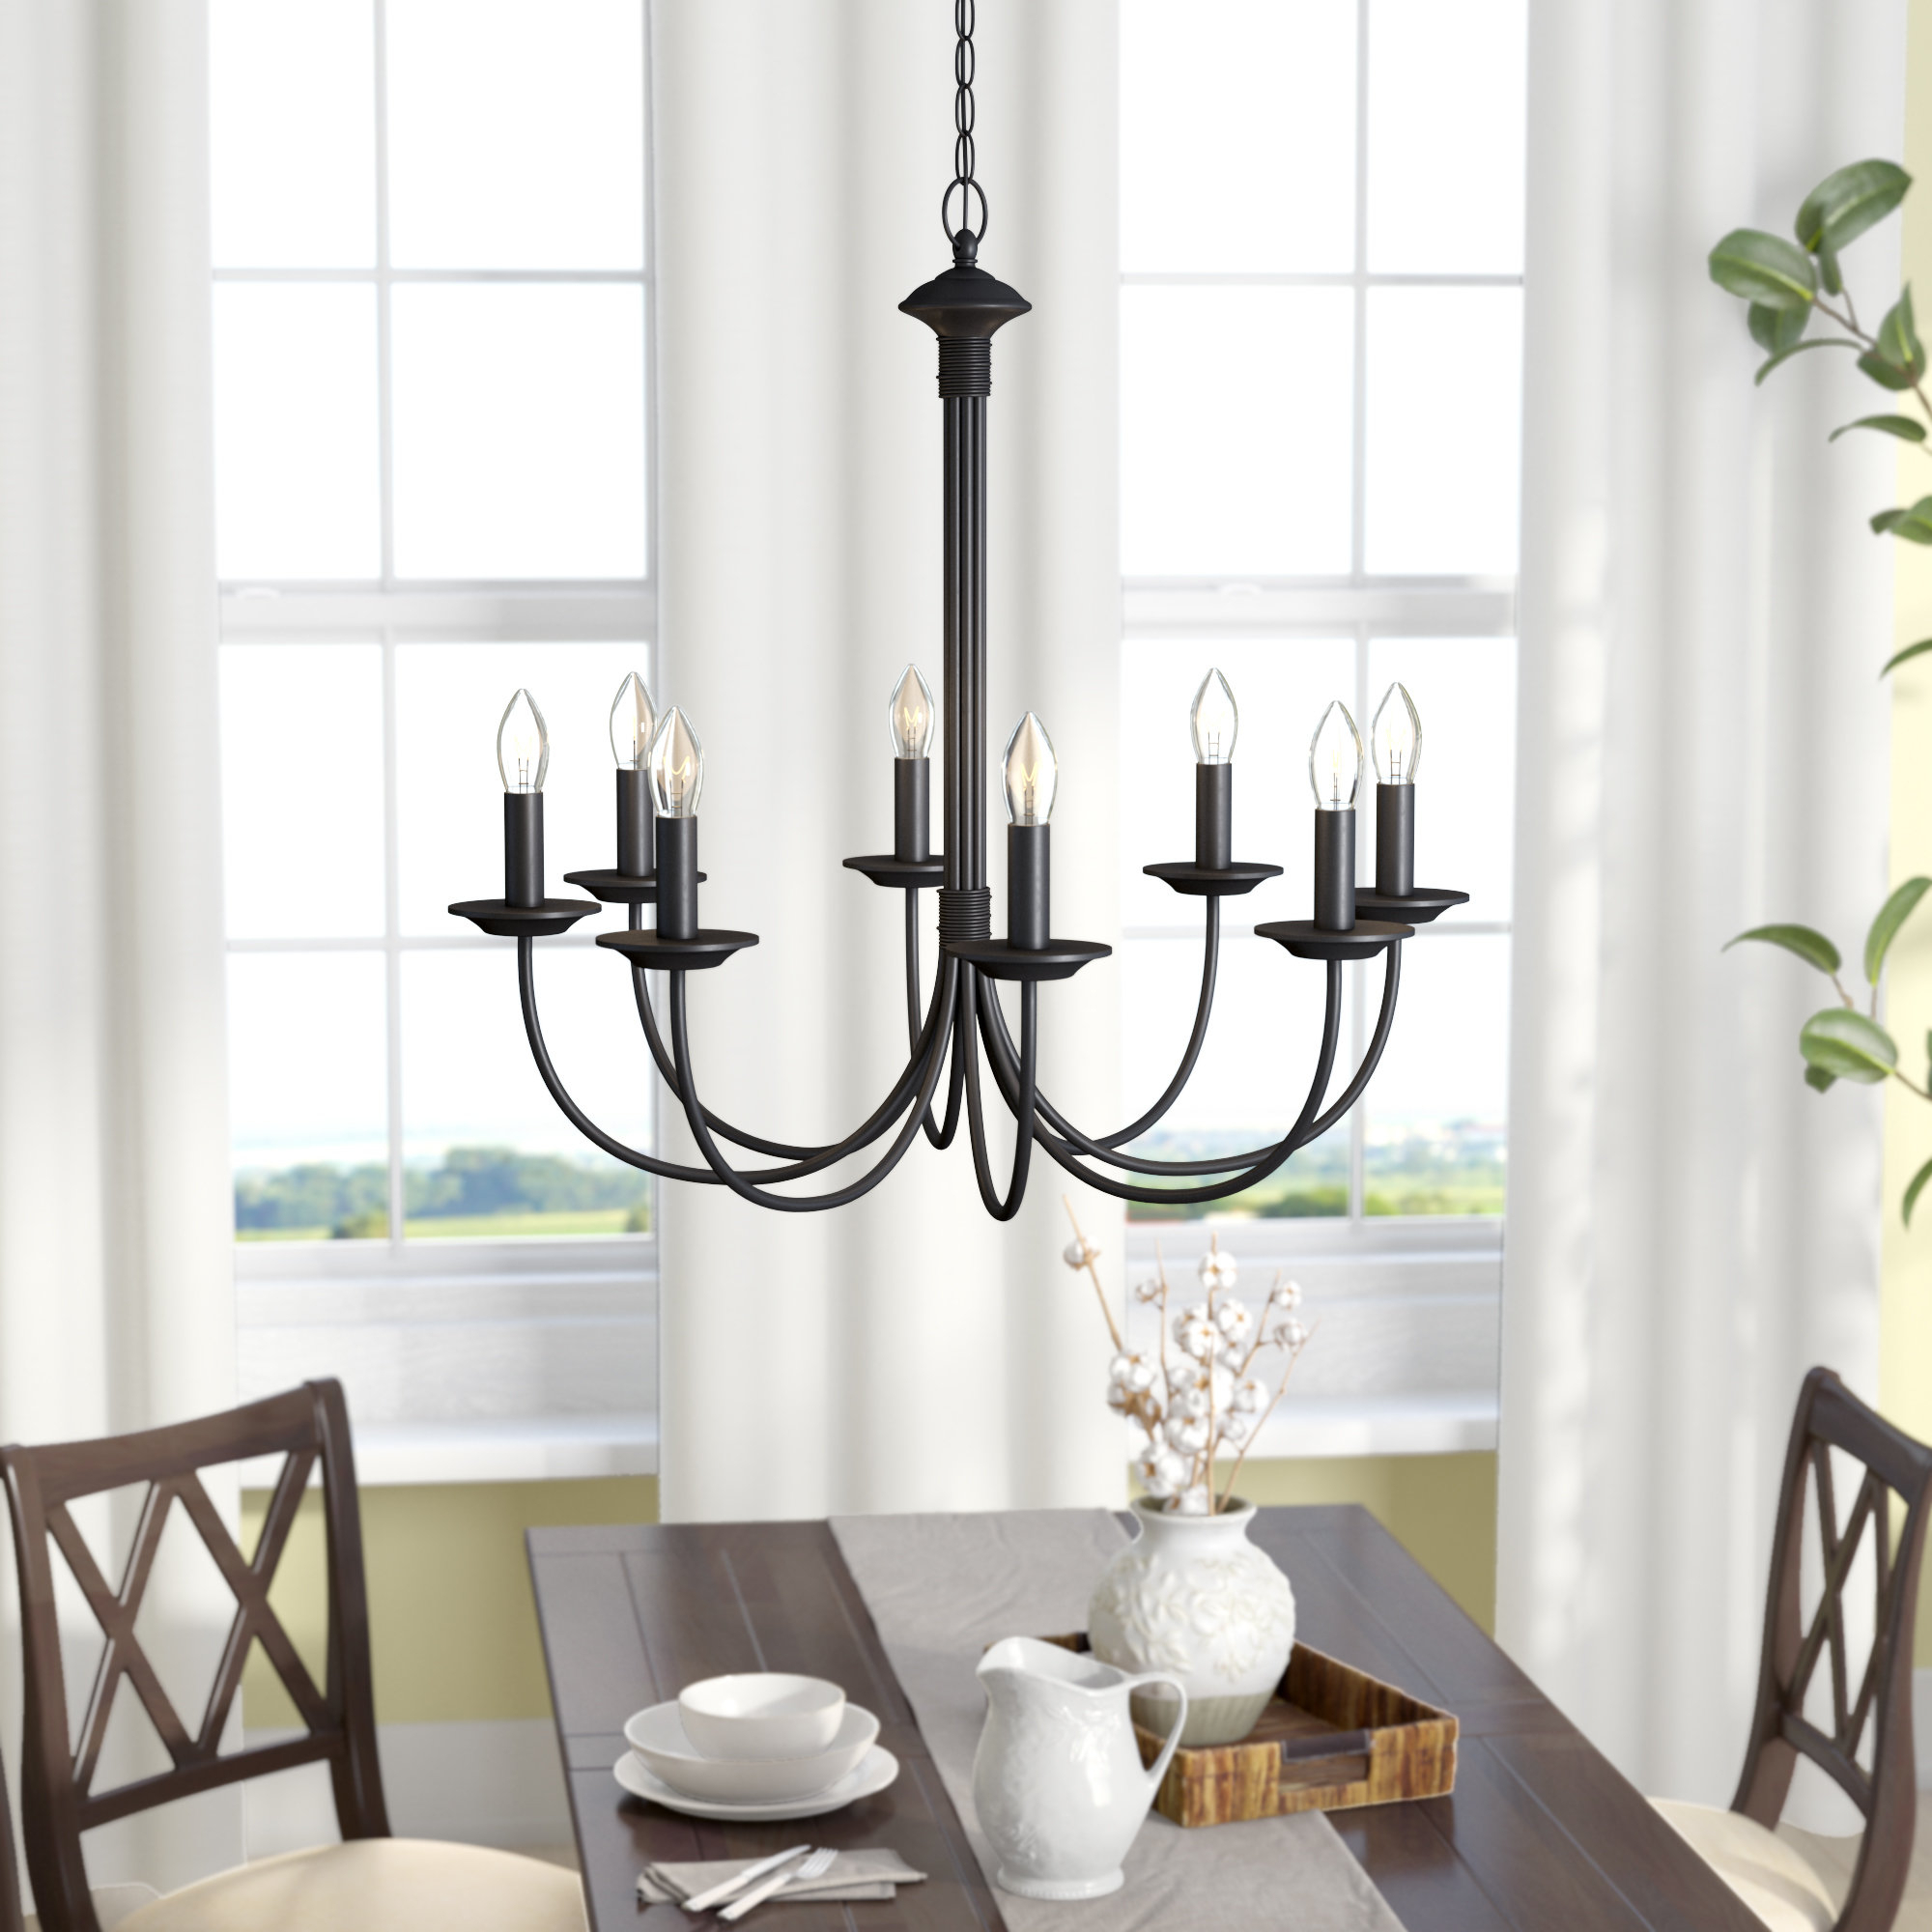 2019 Shaylee 8-Light Candle Style Chandelier regarding Shaylee 5-Light Candle Style Chandeliers